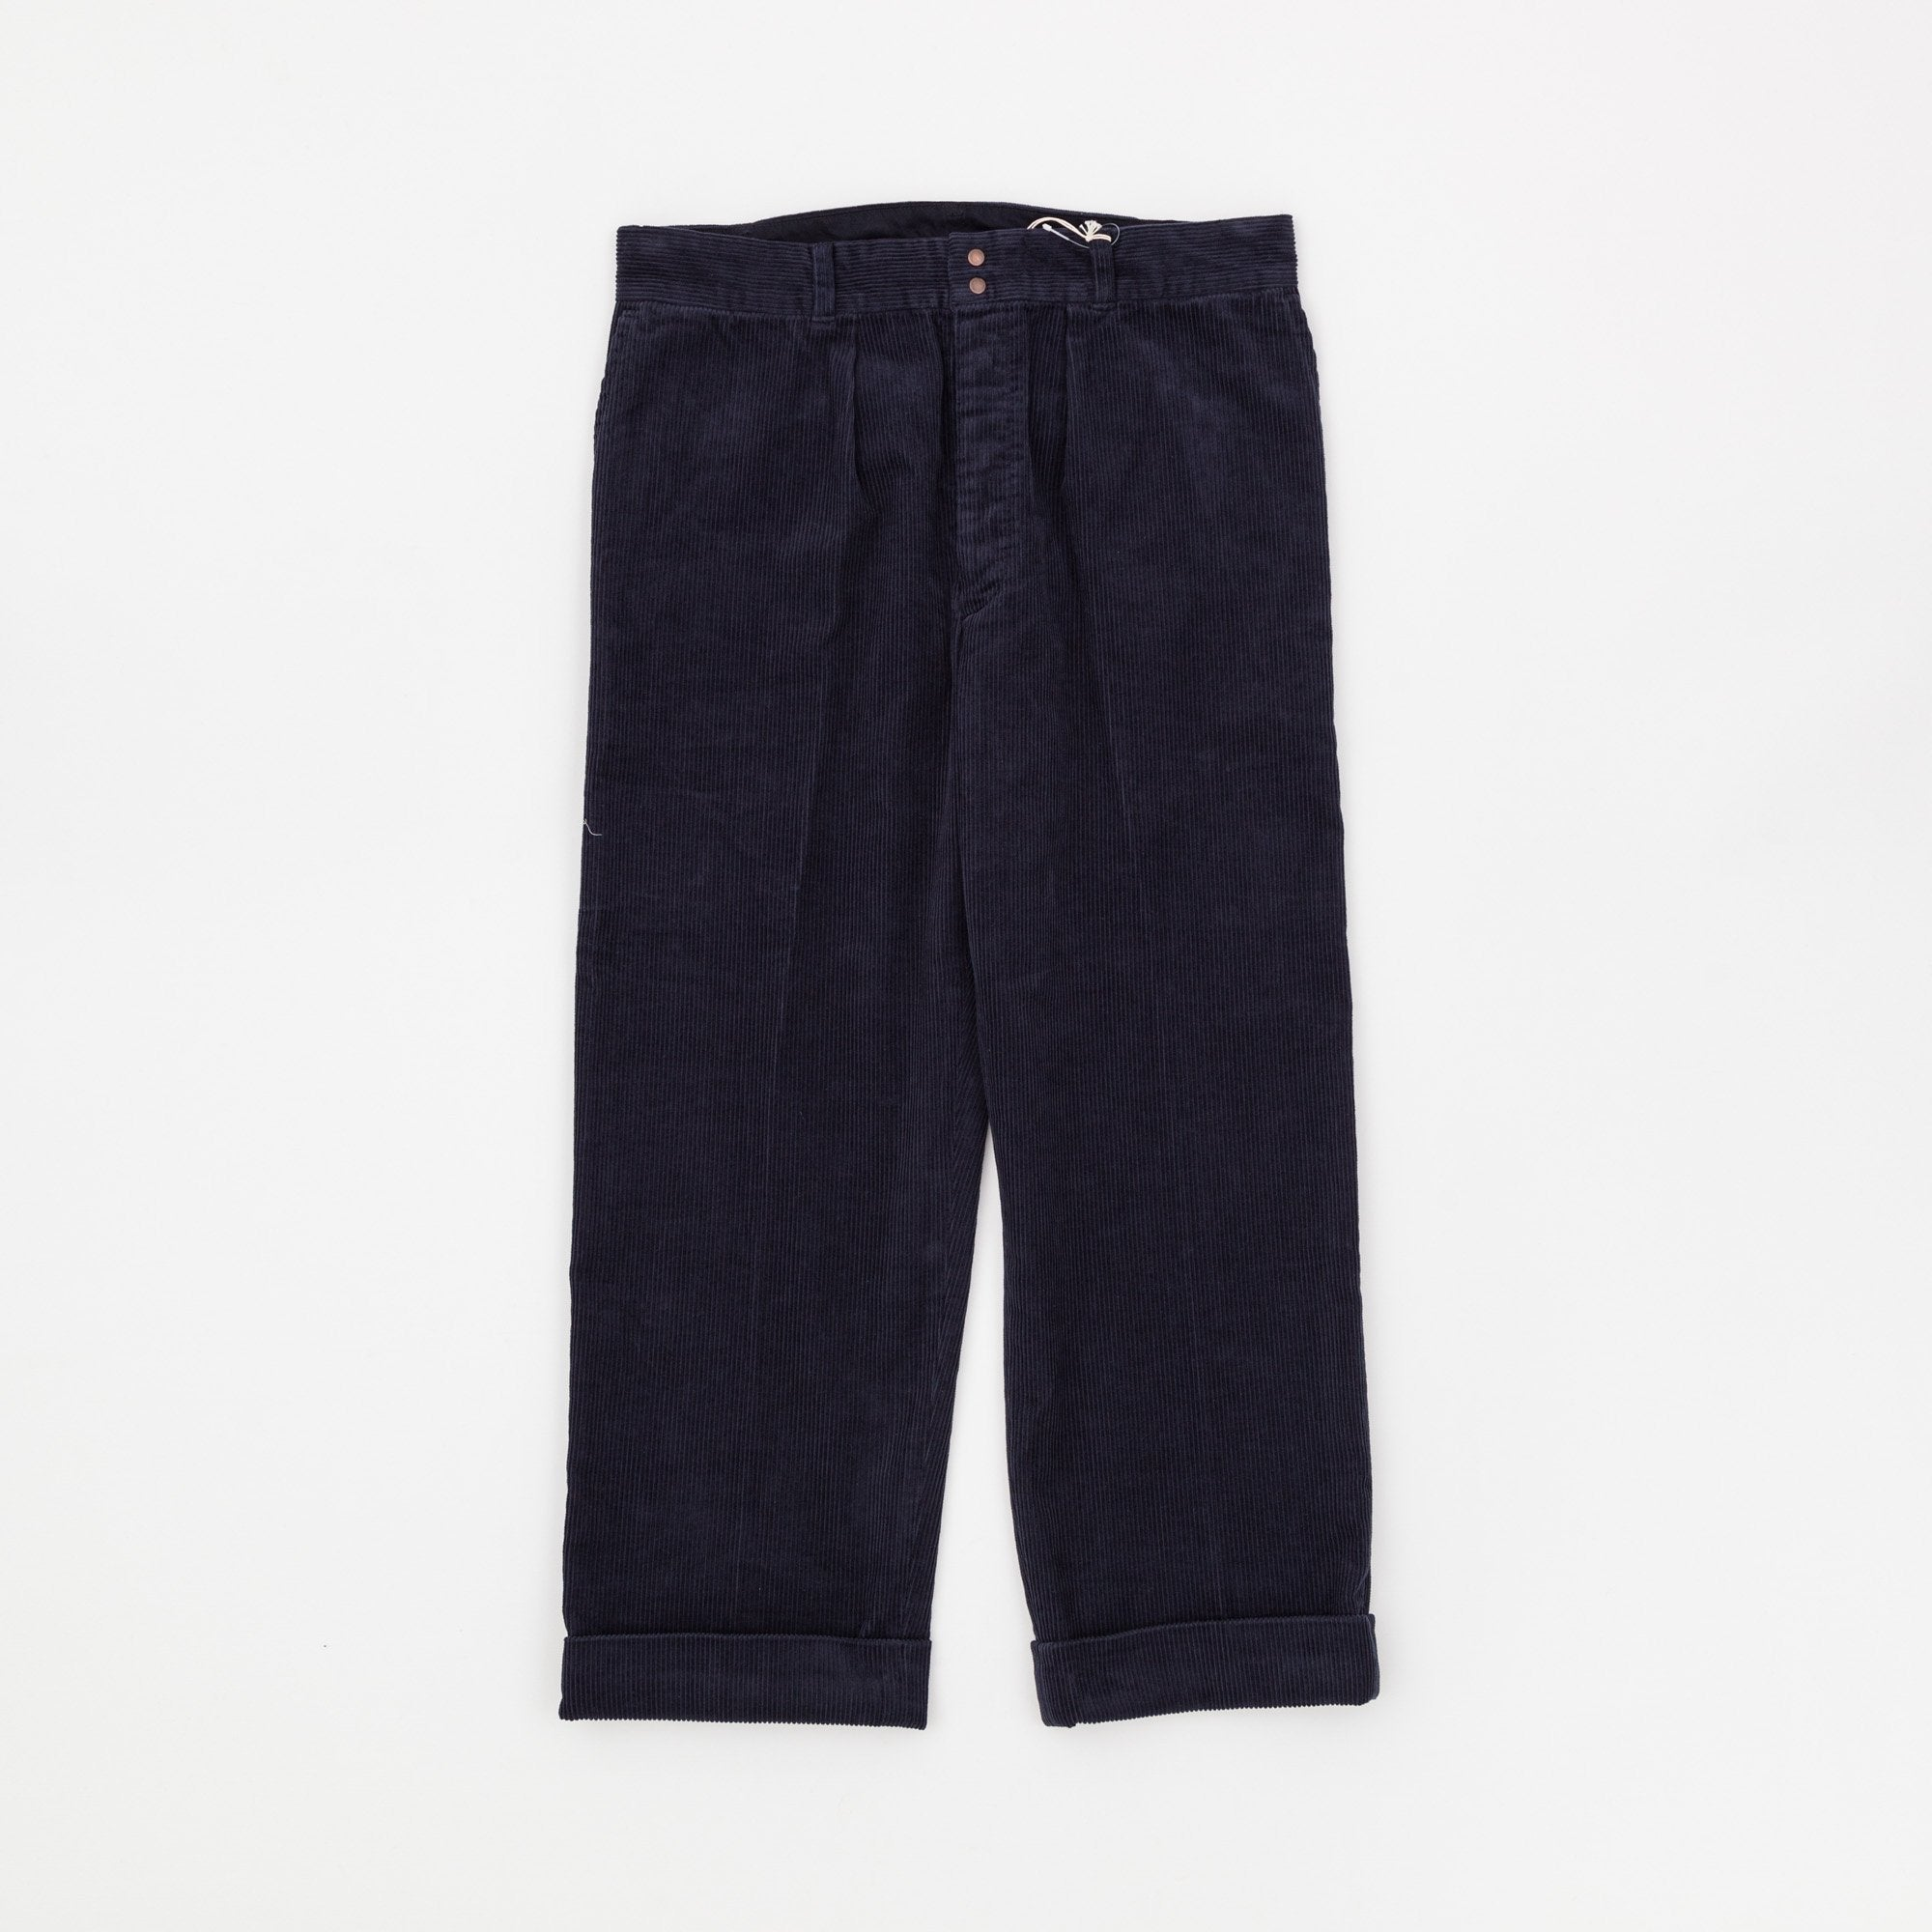 Fujito Corduroy Wide Slacks